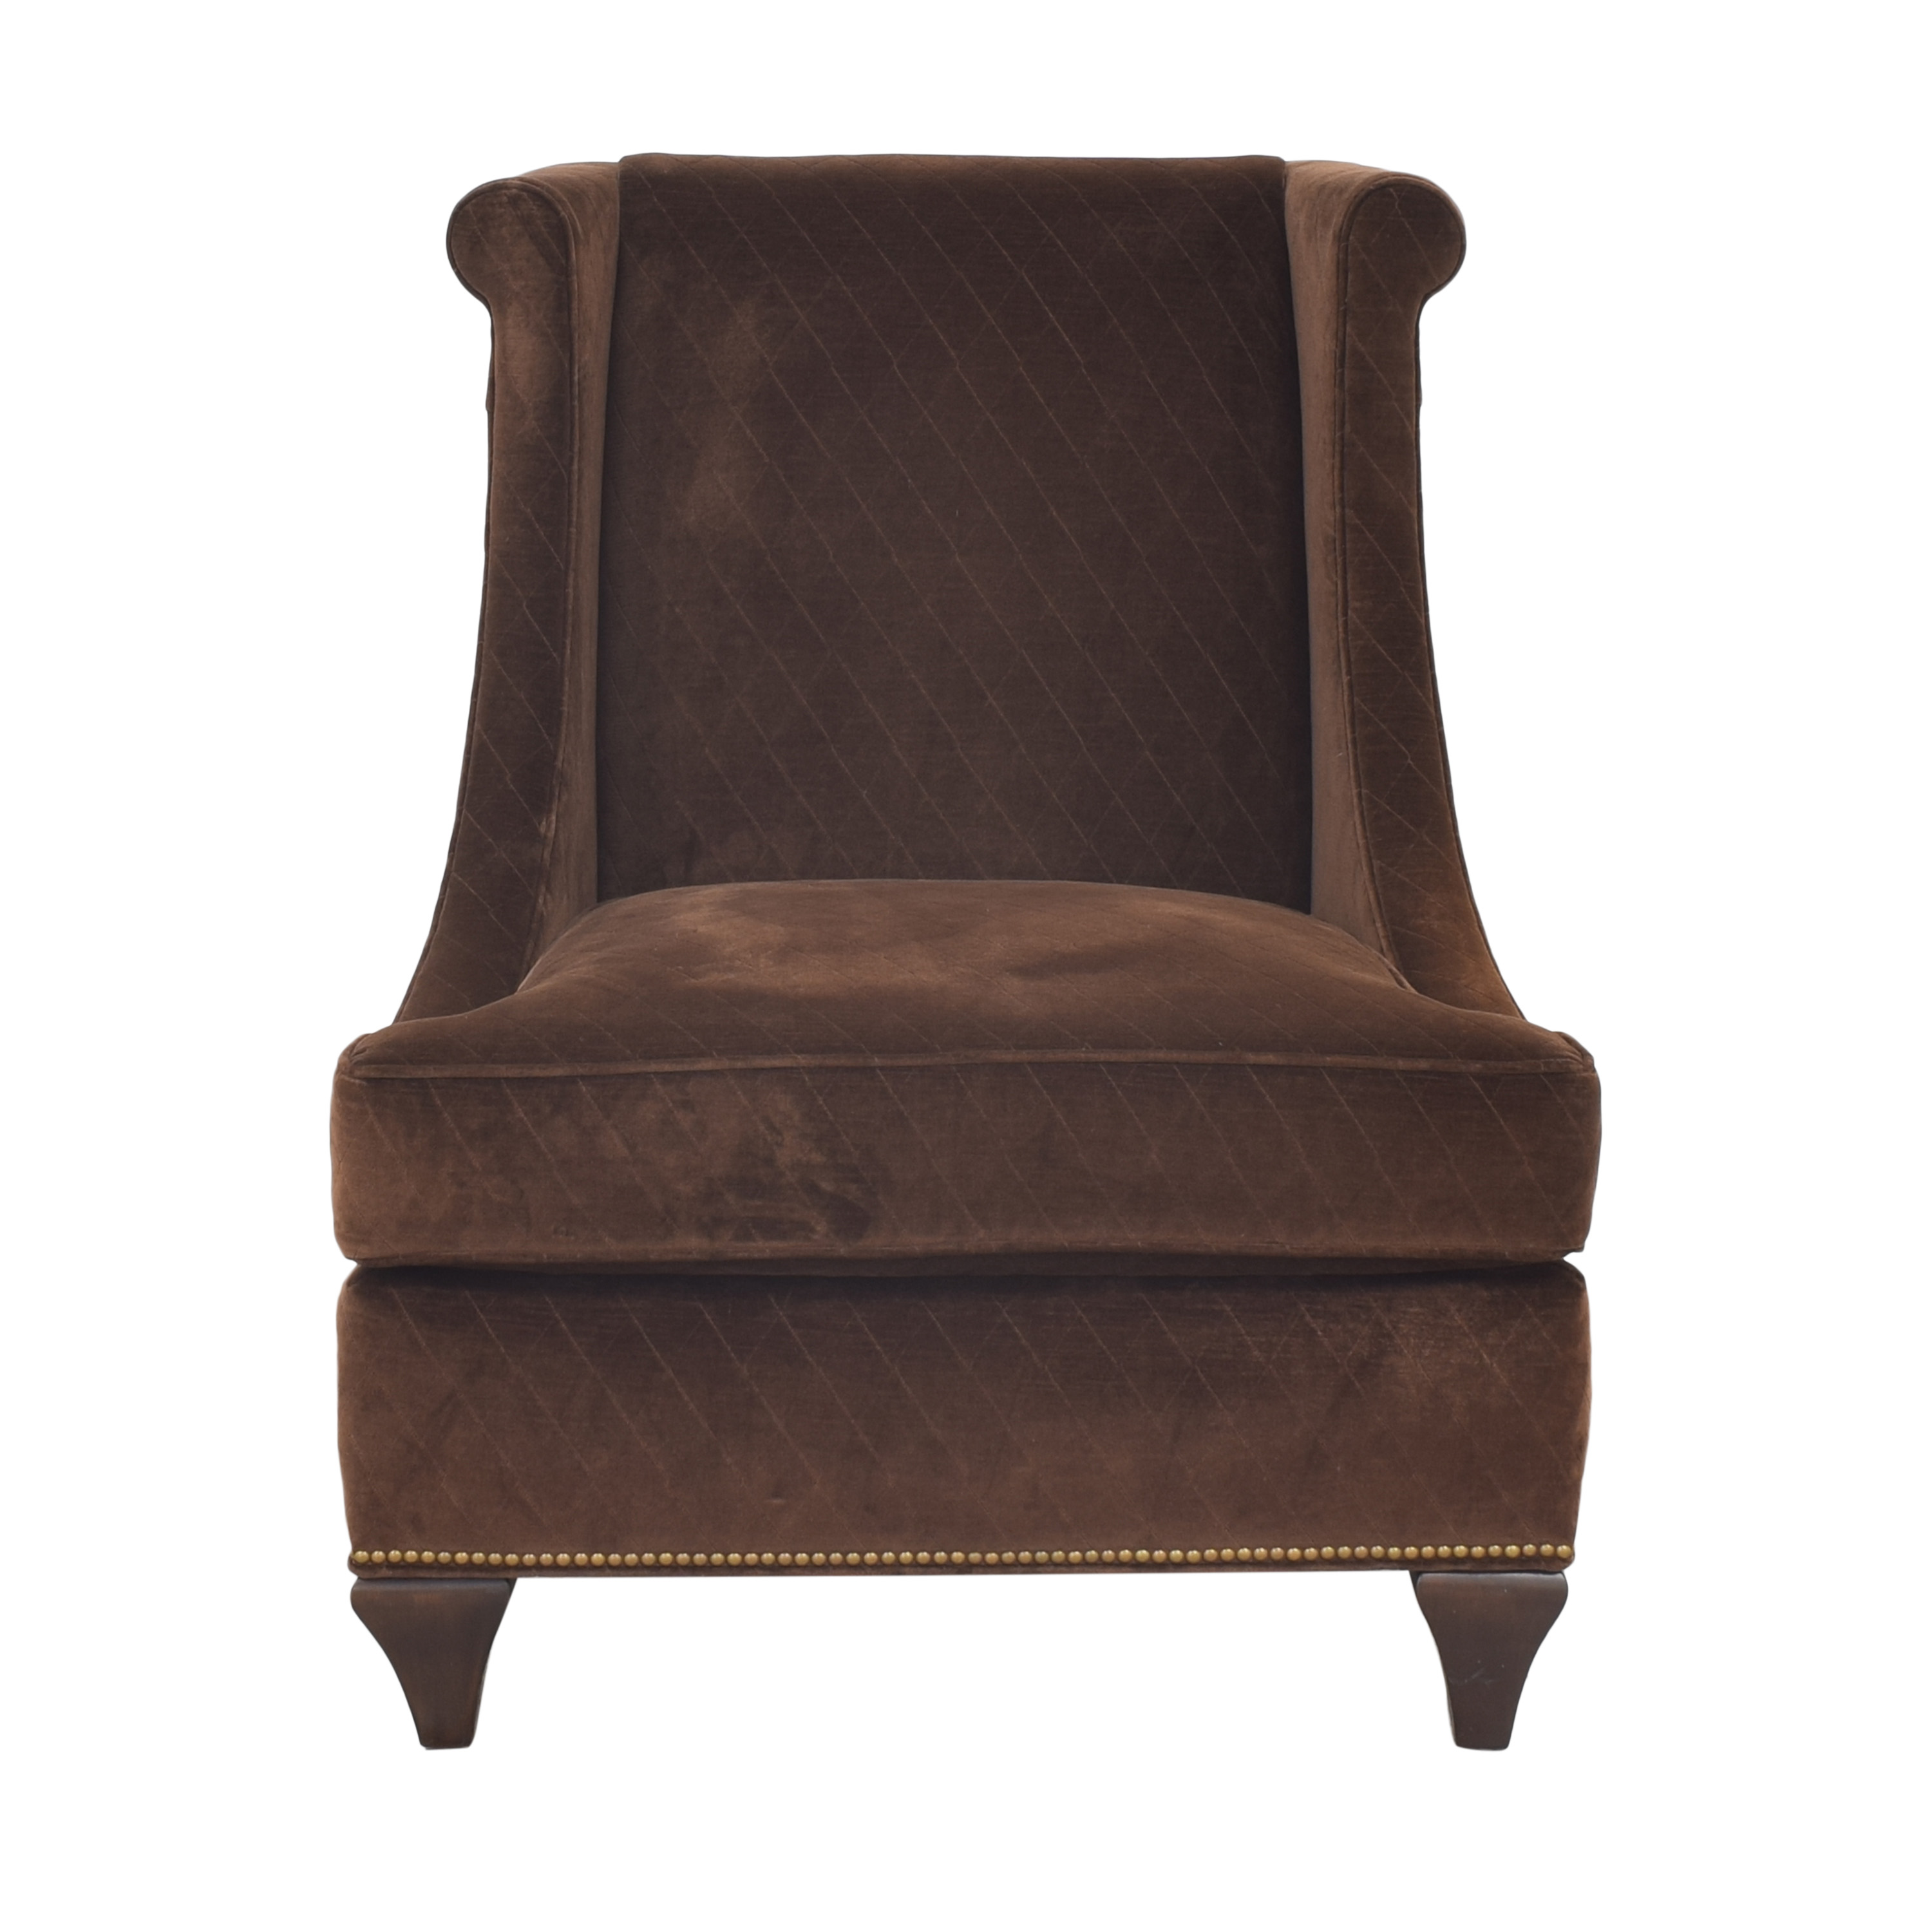 Stanford Furniture Stanford Furniture Blane Accent Chair dark brown